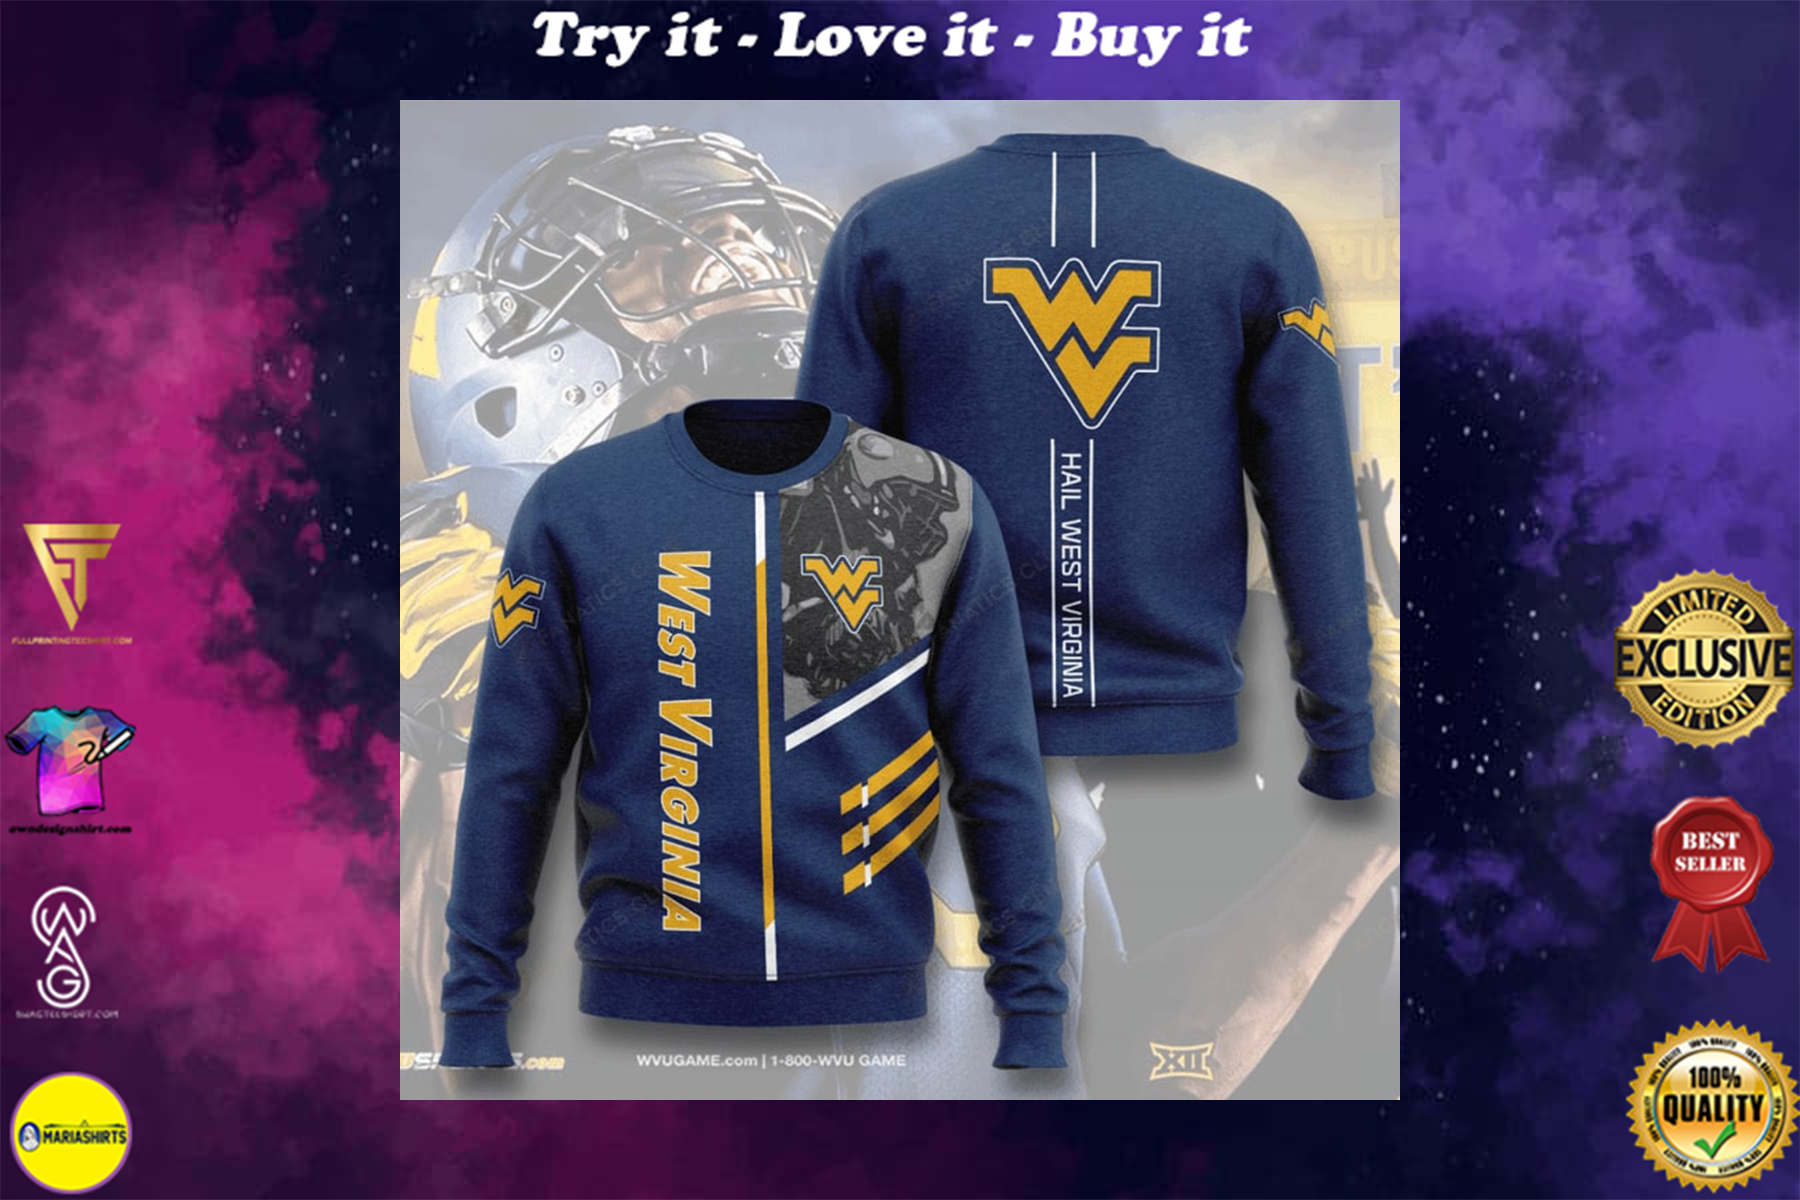 [highest selling] west virginia mountaineers football hail west virginia full printing ugly sweater - maria